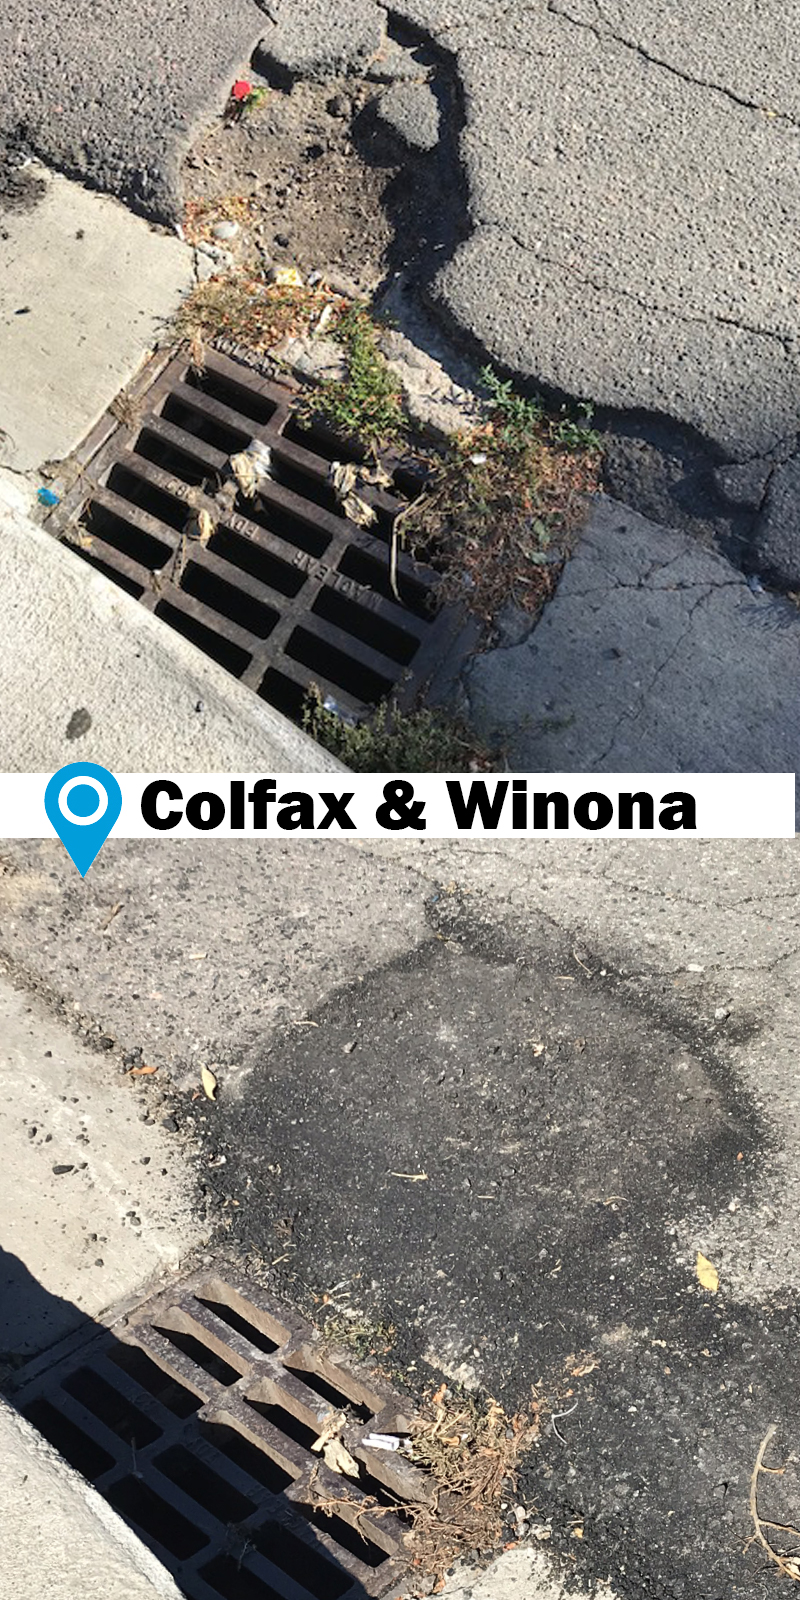 before and after photo of roadway damage repaired near curb and gutter